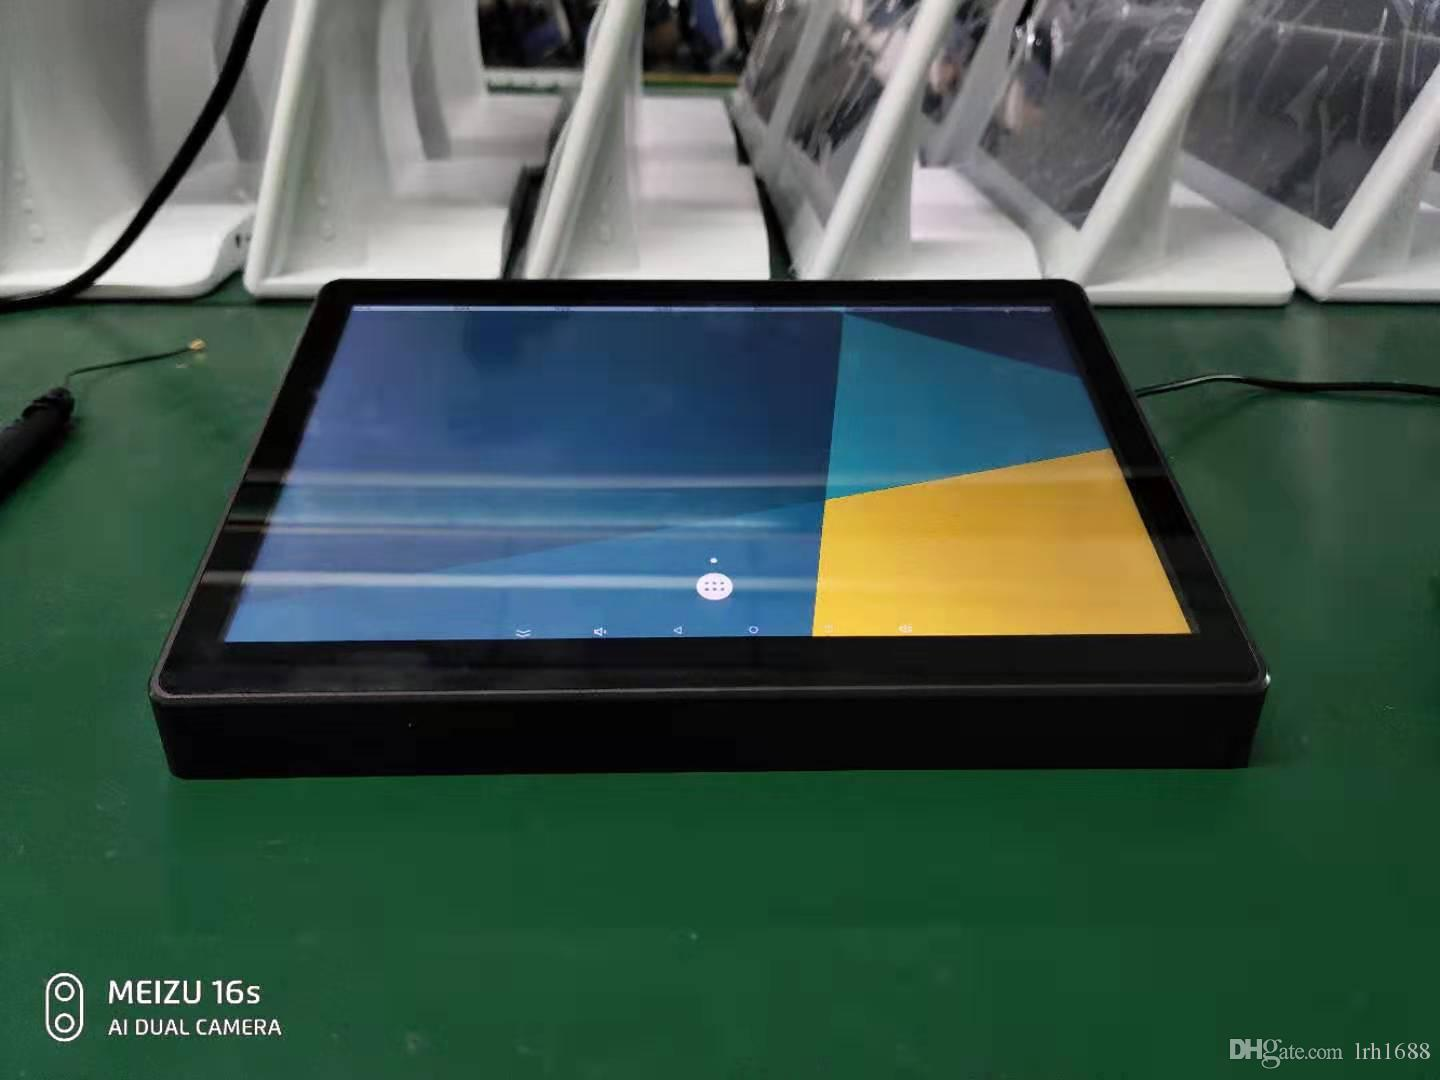 10.1inch 10.4inch standing capacity touch Android tablet PC for restaurant, shop, POS, evaluation